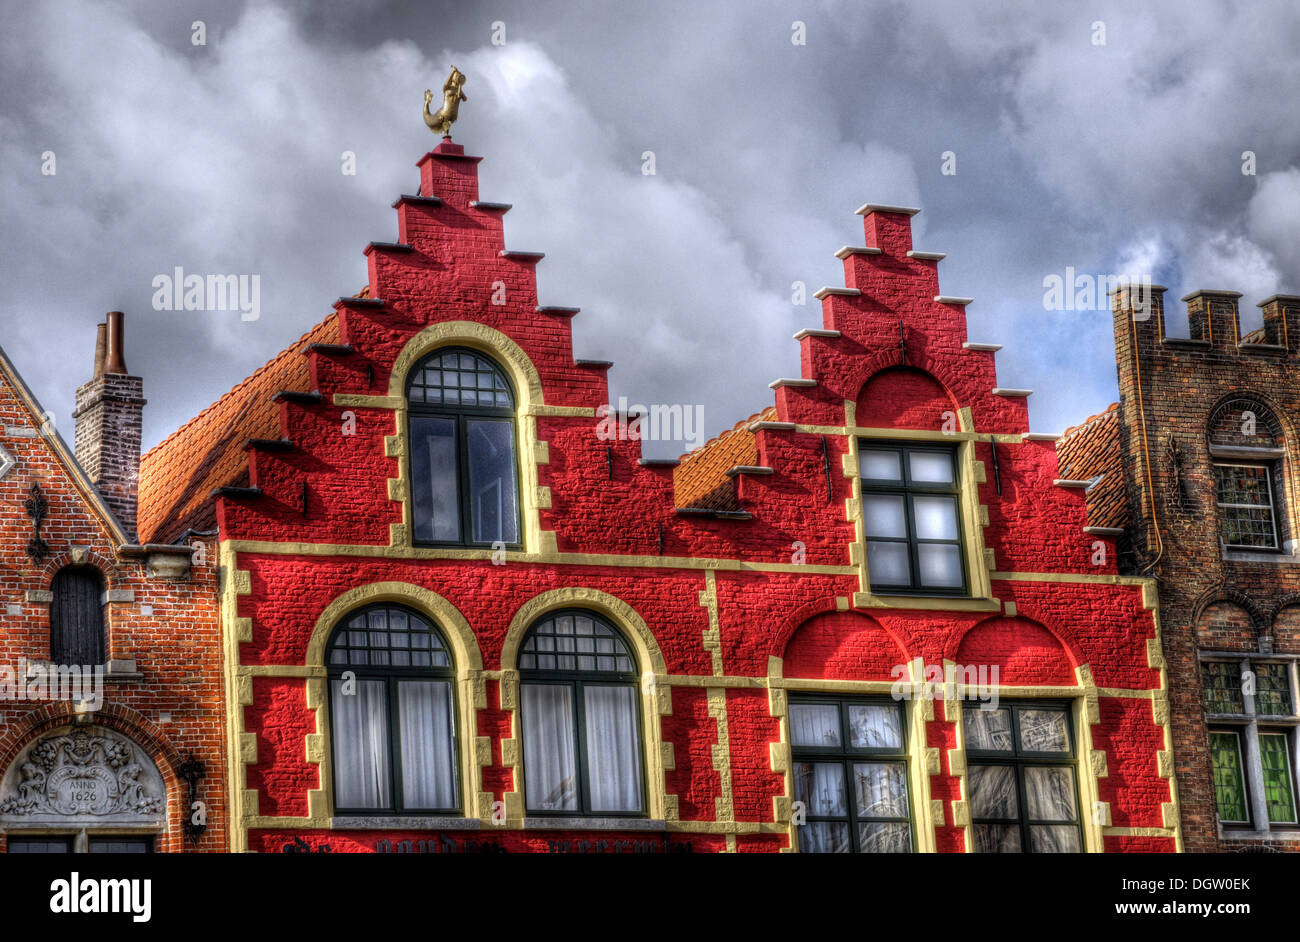 Colourful traditional buildings in Bruges, Belgium, image processed in HDR - Stock Image